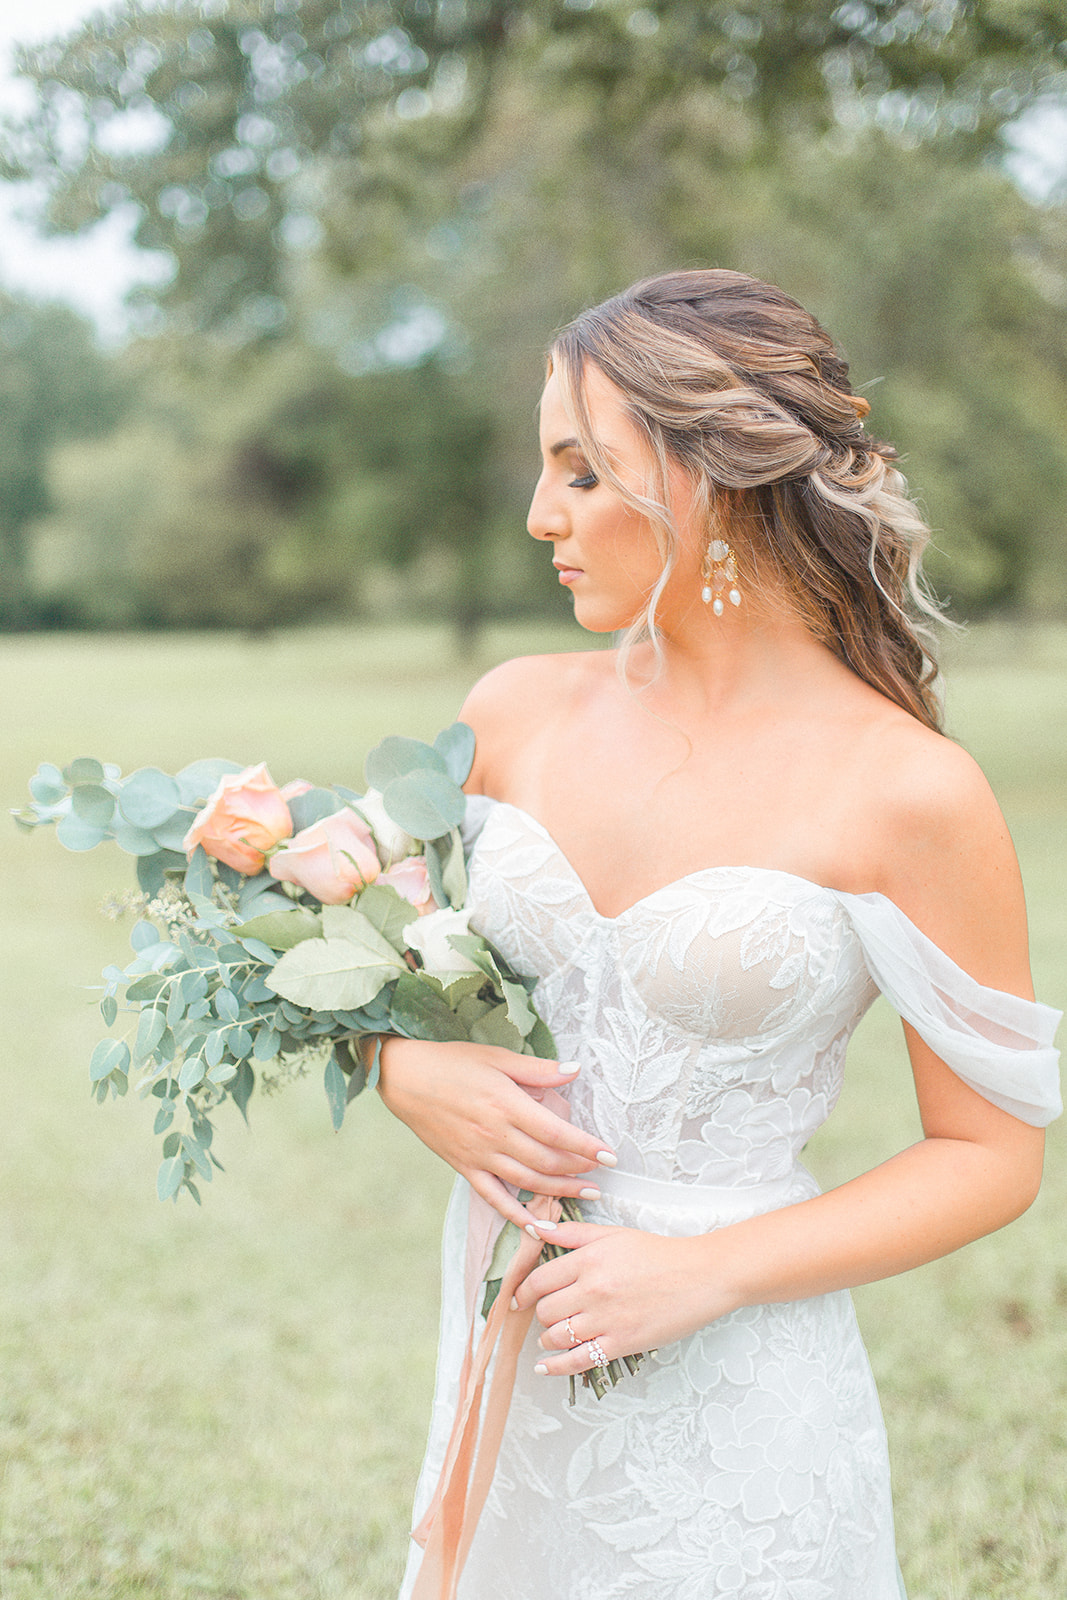 Dreamy Autumn Intimate Wedding Floral Inspiration as photographed by Kevin & Aly Photography